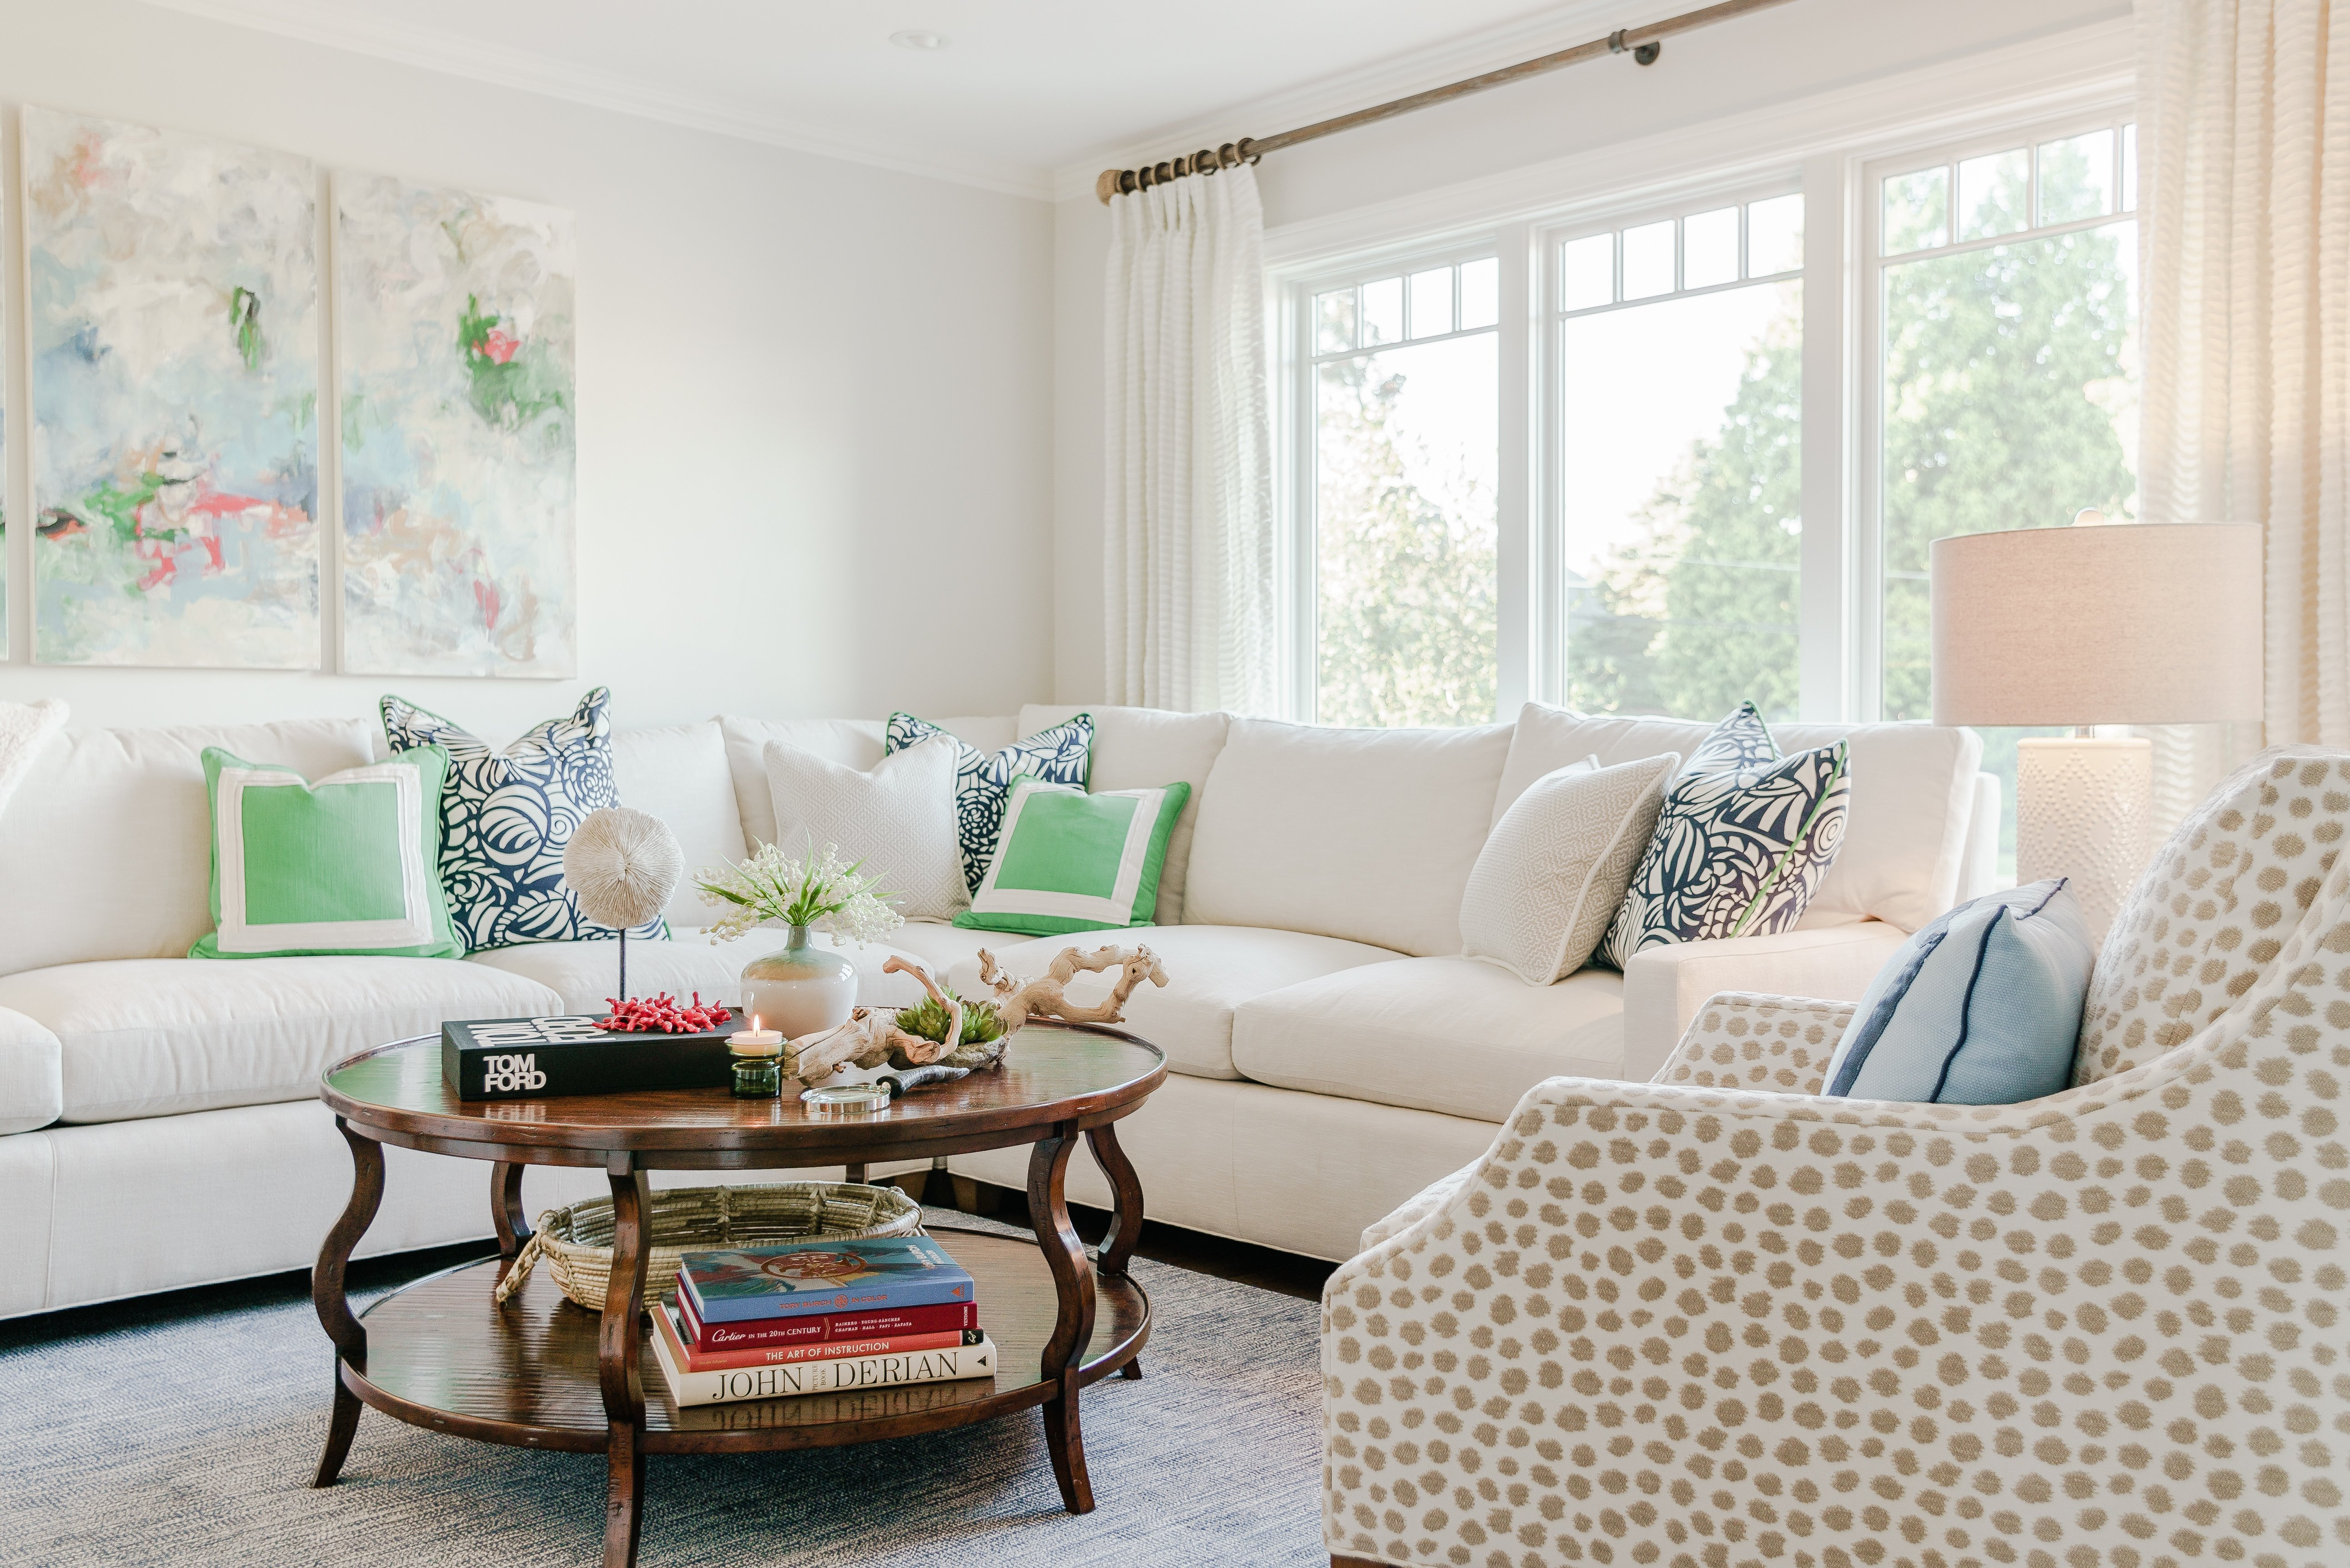 8 Expert Tips for Styling a Classic Space